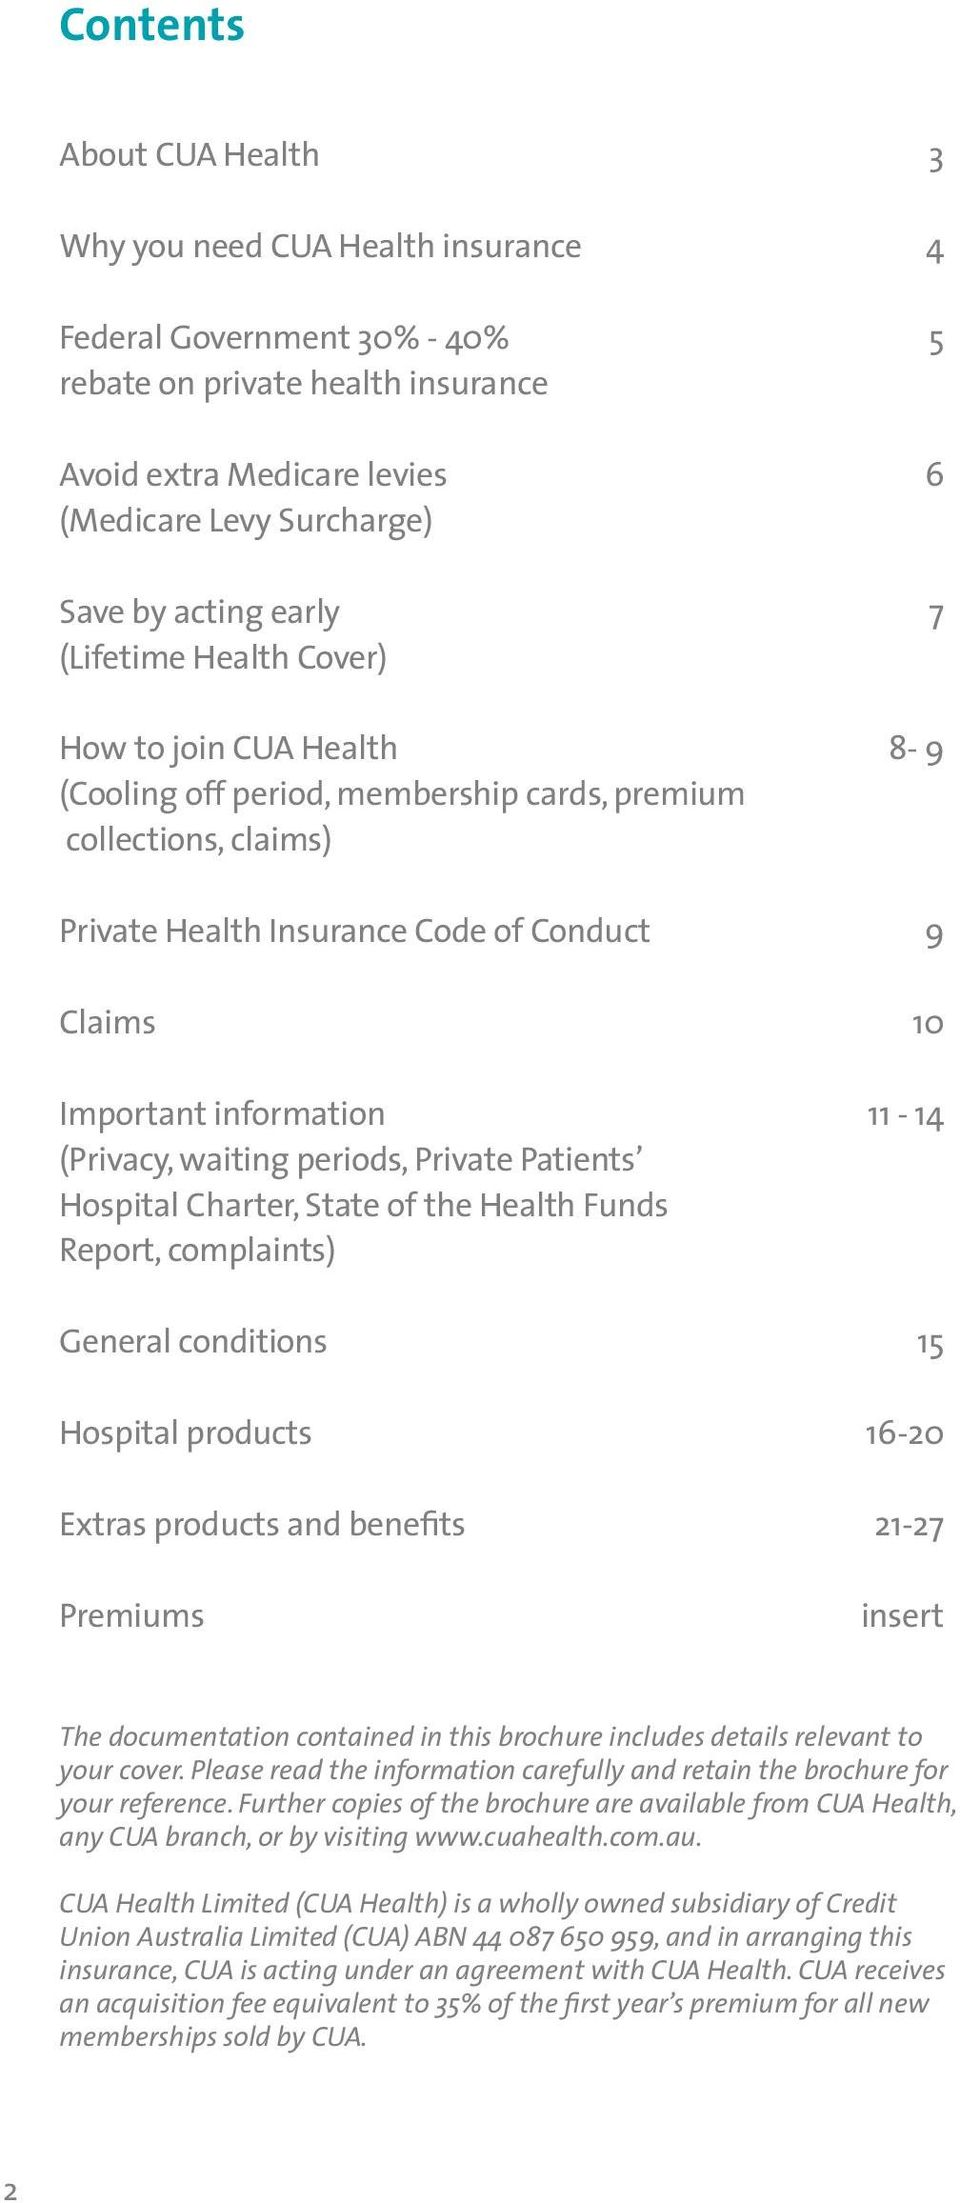 information 11-14 (Privacy, waiting periods, Private Patients Hospital Charter, State of the Health Funds Report, complaints) General conditions 15 Hospital products 16-20 Extras products and